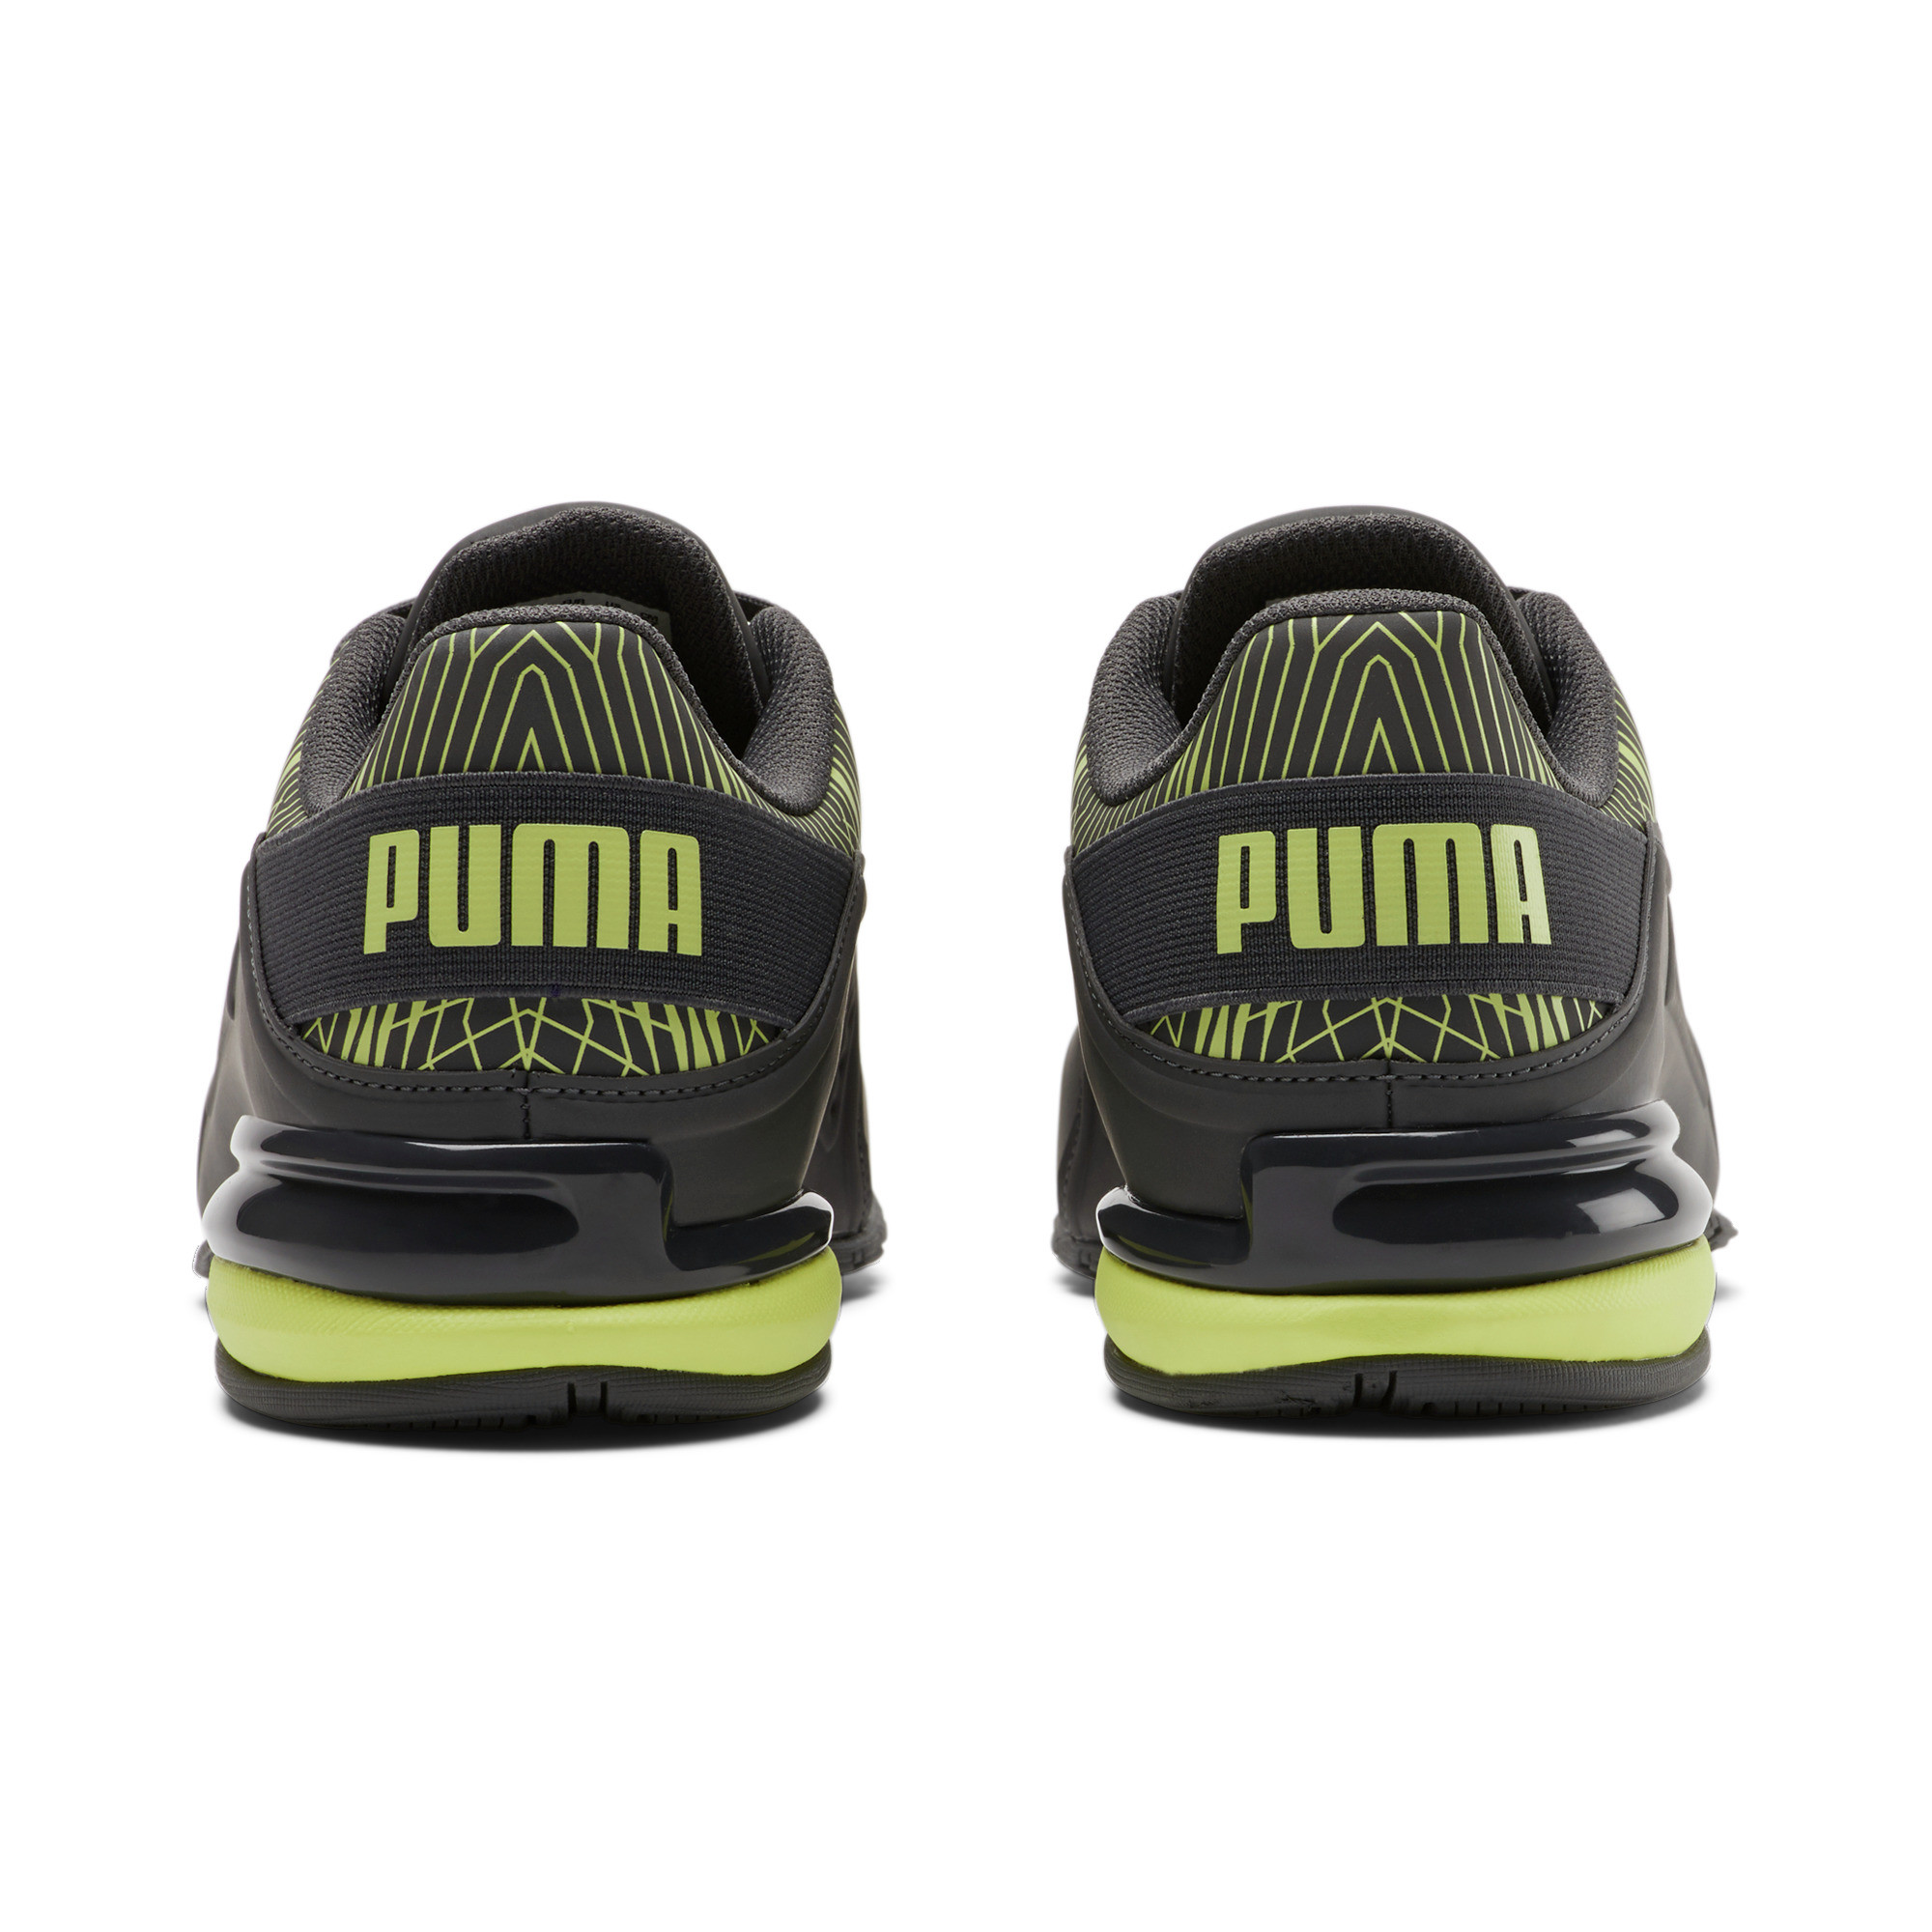 PUMA-Men-039-s-Viz-Runner-Graphic-Sneakers thumbnail 21